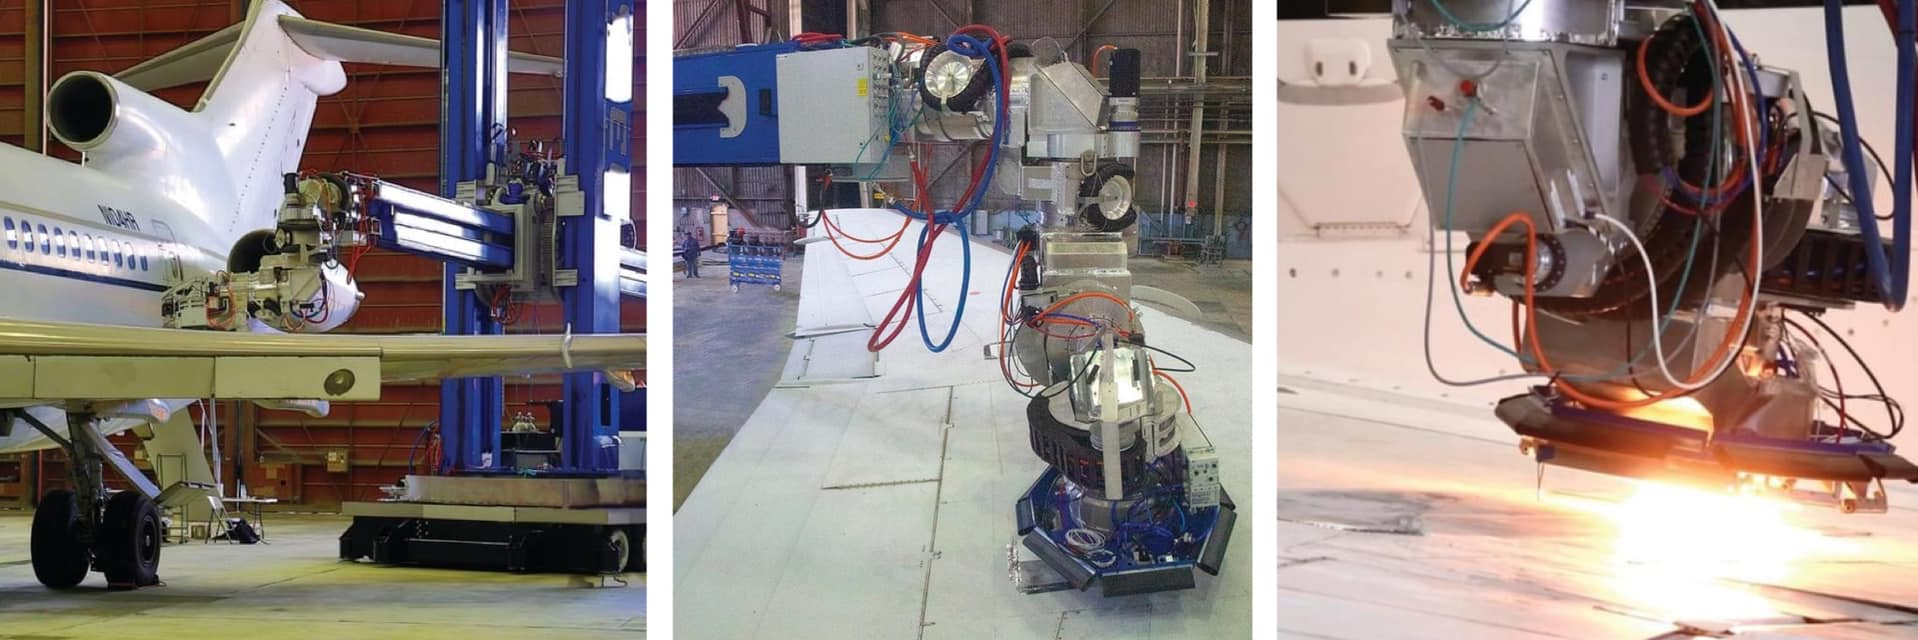 Collage of large mobile robots working on aircrafts